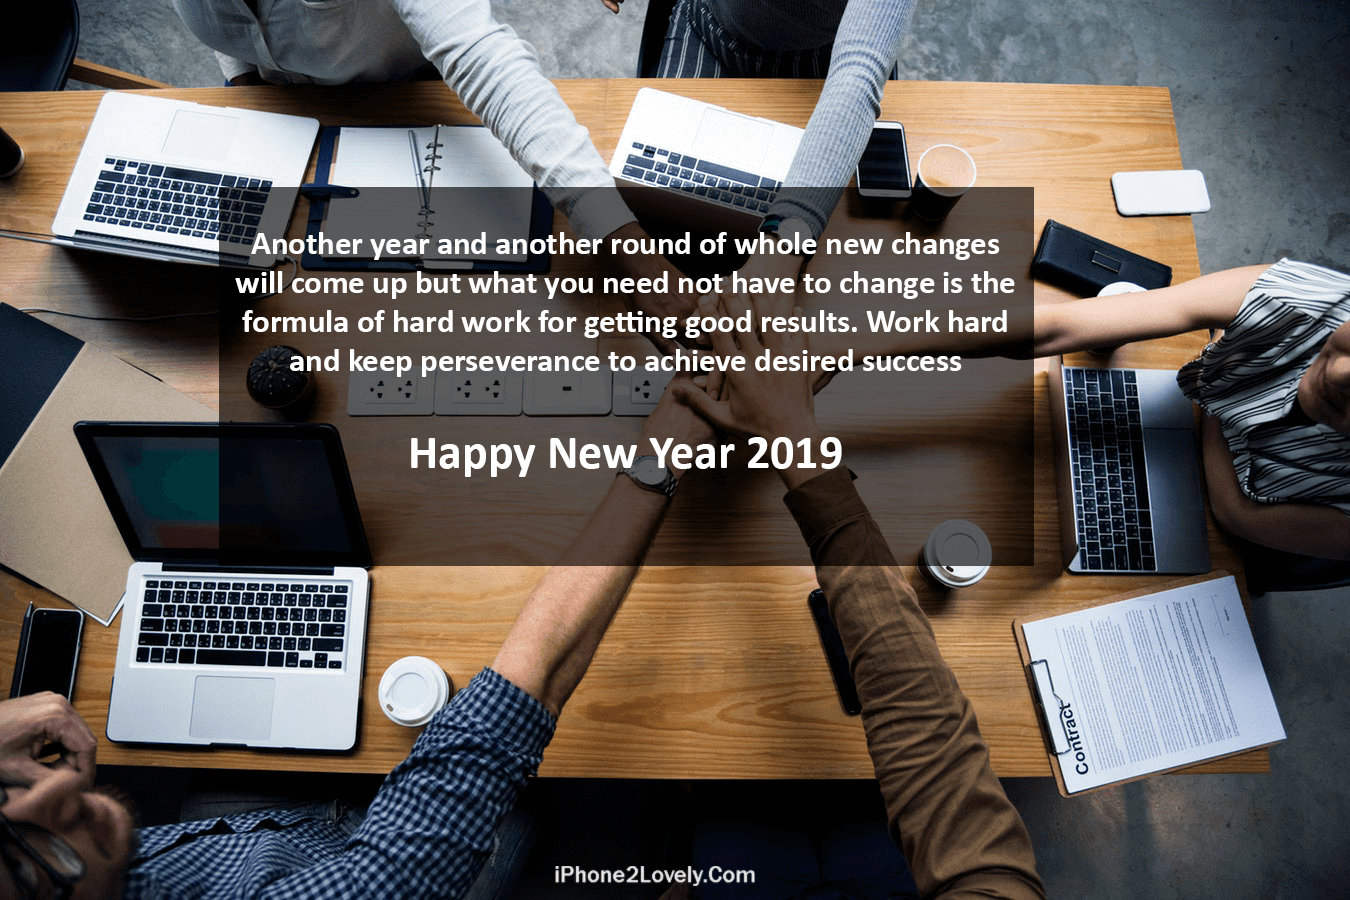 New Year 2019 Quotes To Wish Boss From Collegues New Year Wishes Quotes Happy New Year Wishes Happy New Year 2019